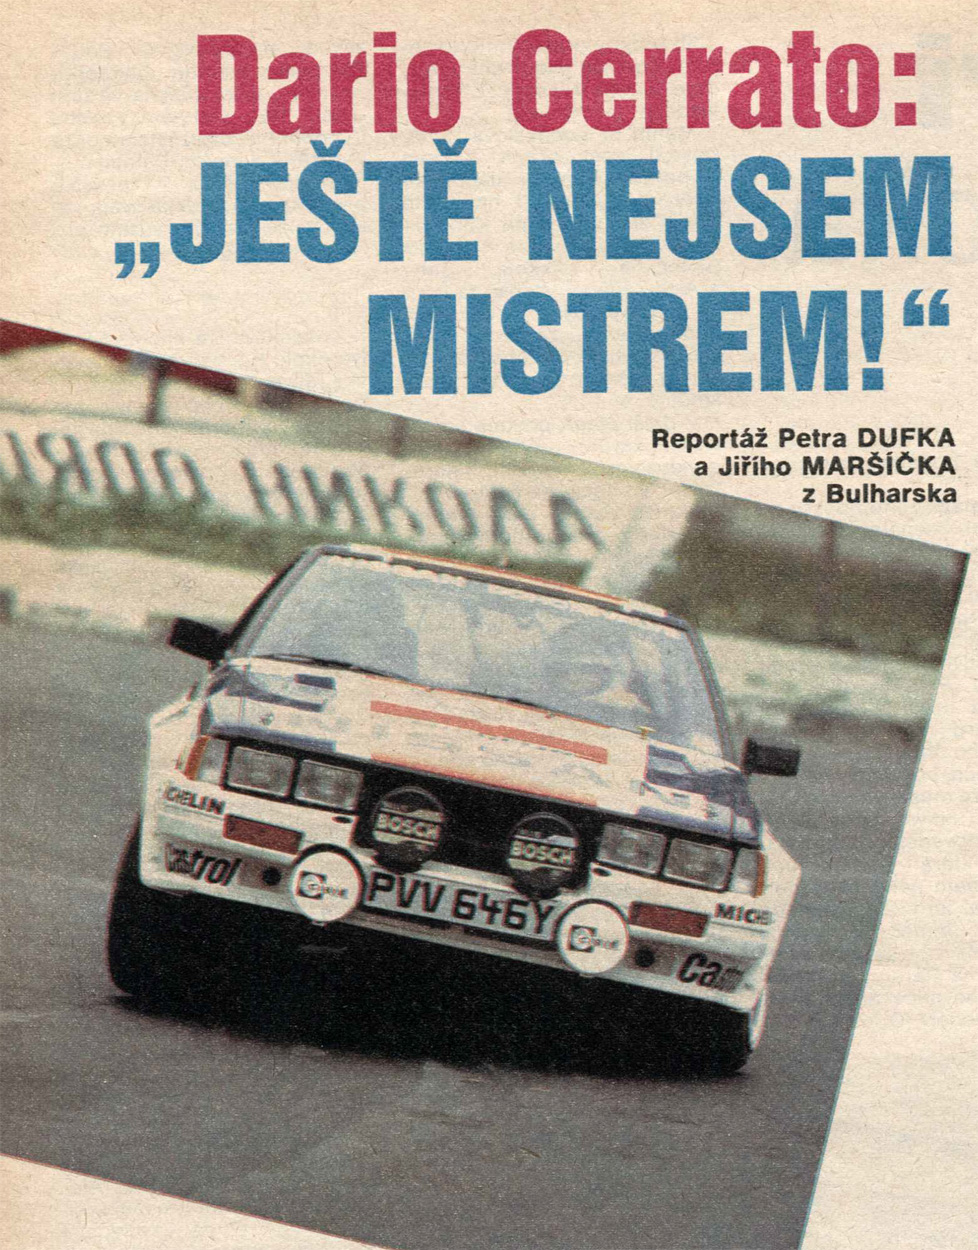 Kaby-Gormley / Nissan 240 RS